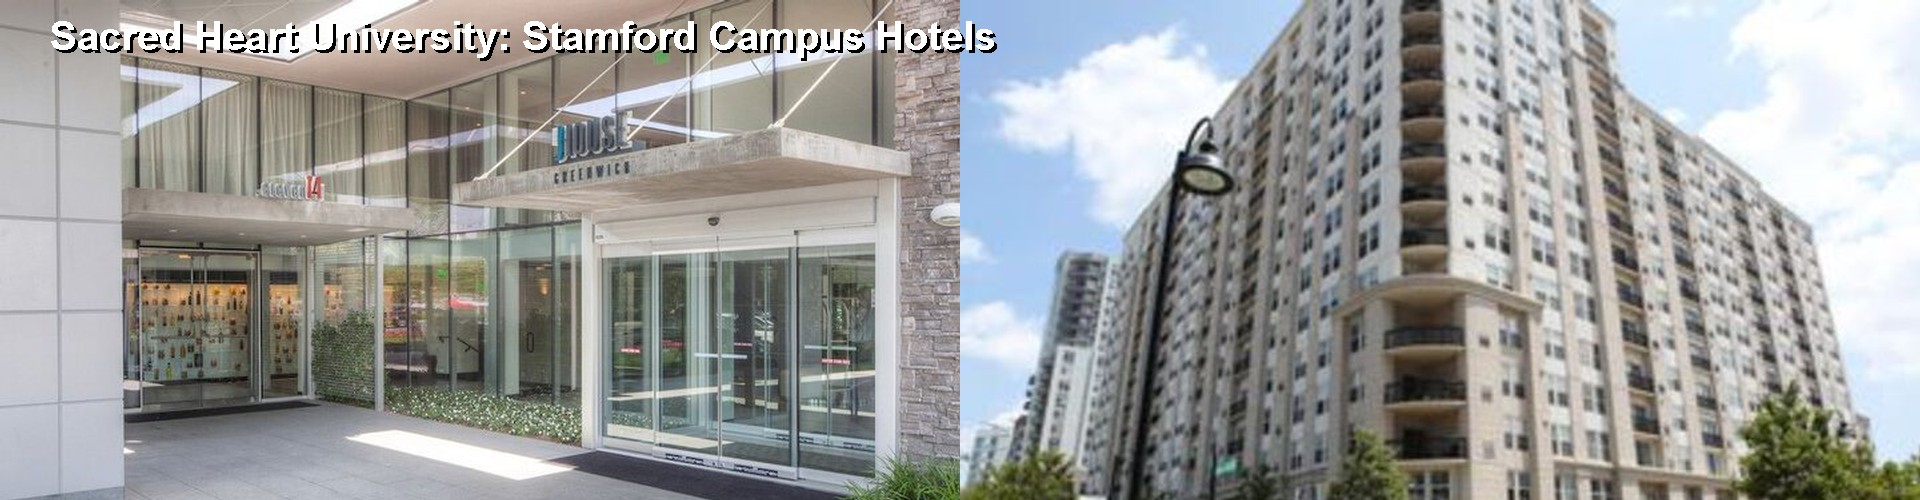 5 Best Hotels near Sacred Heart University: Stamford Campus